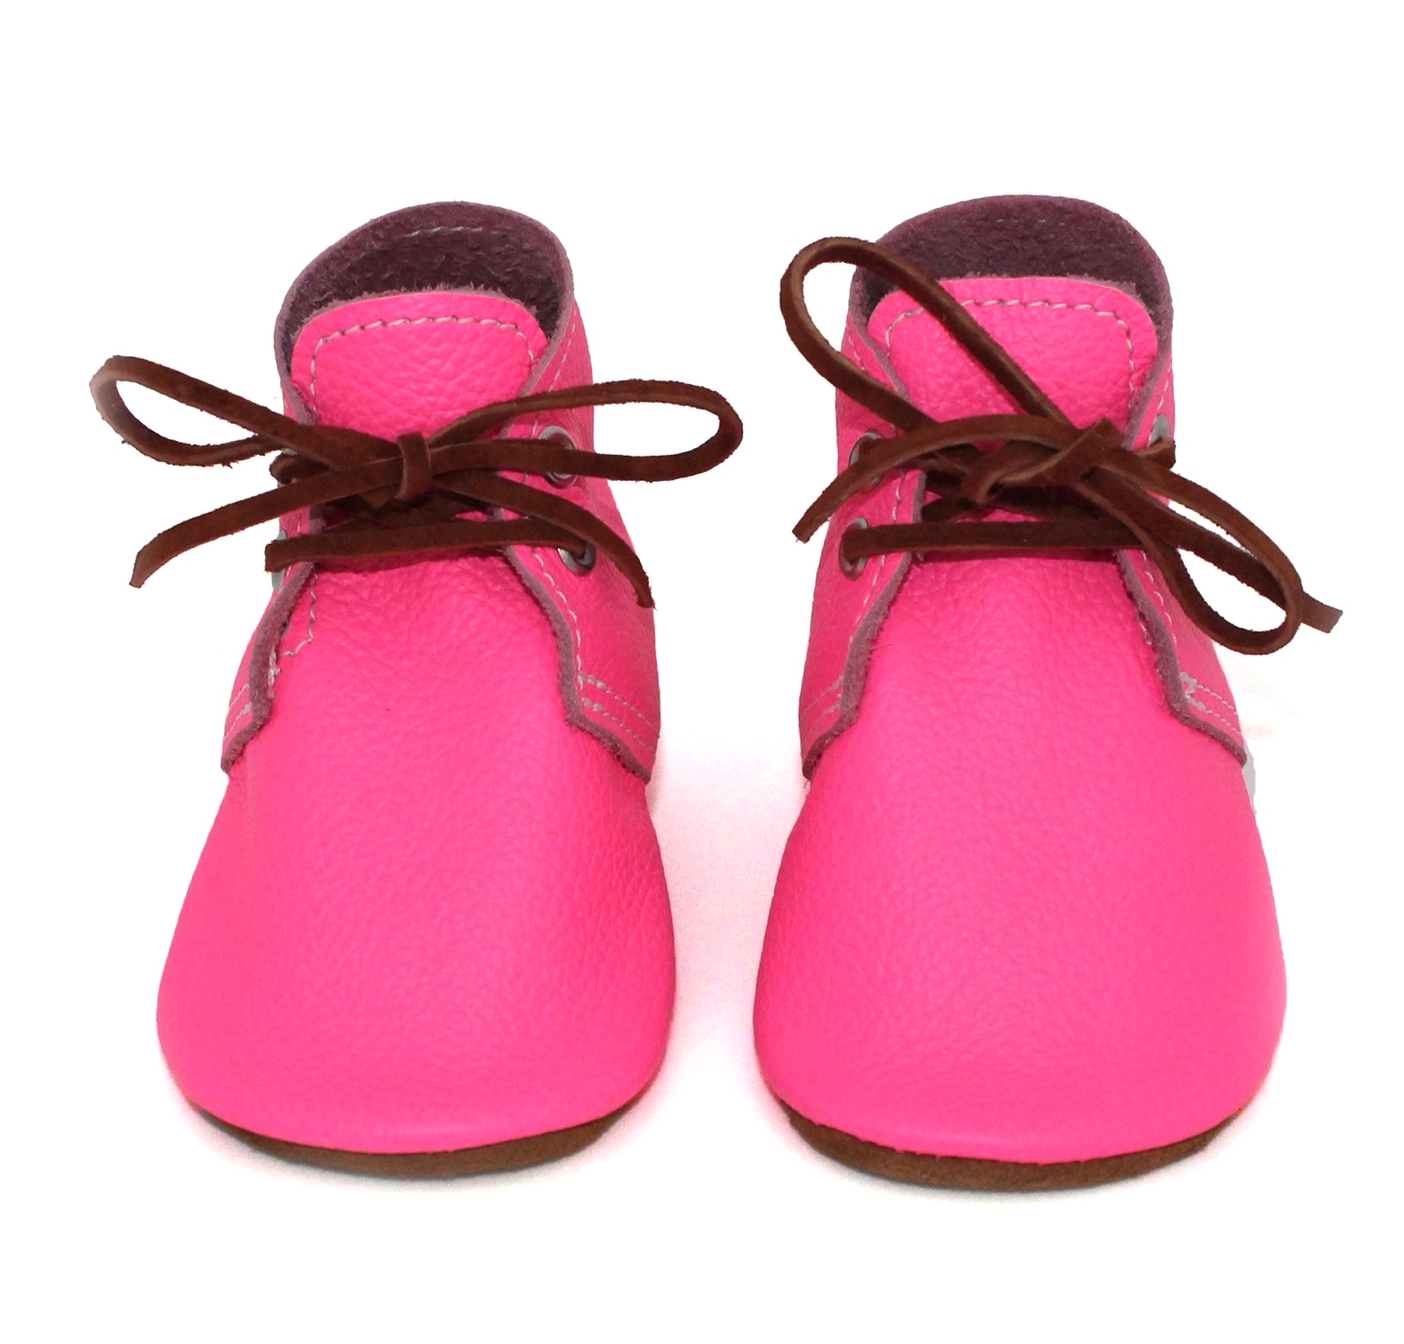 the oxford: shocking pink (With images) | Baby boots, Kids